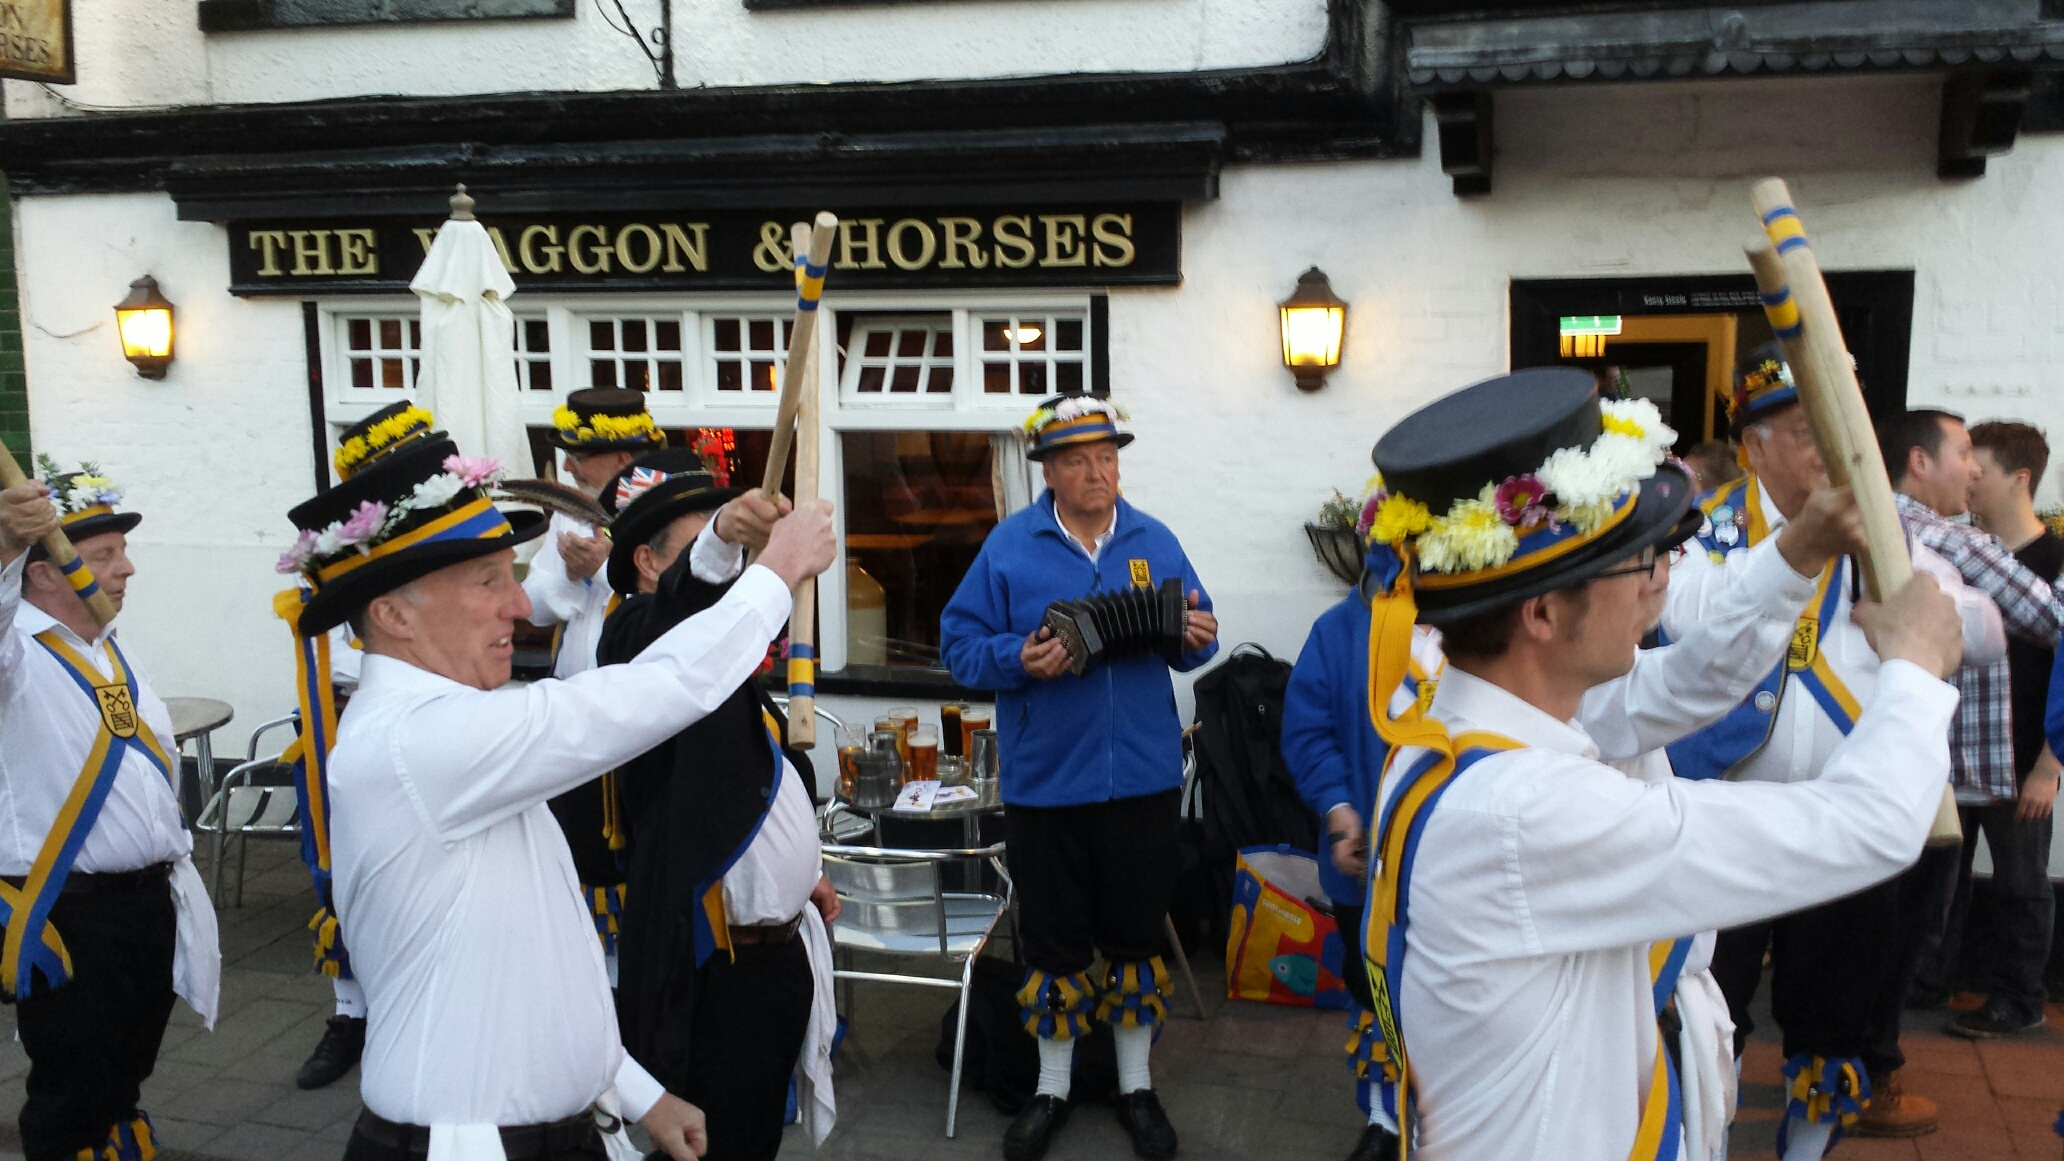 Phil at The Waggon and Horses